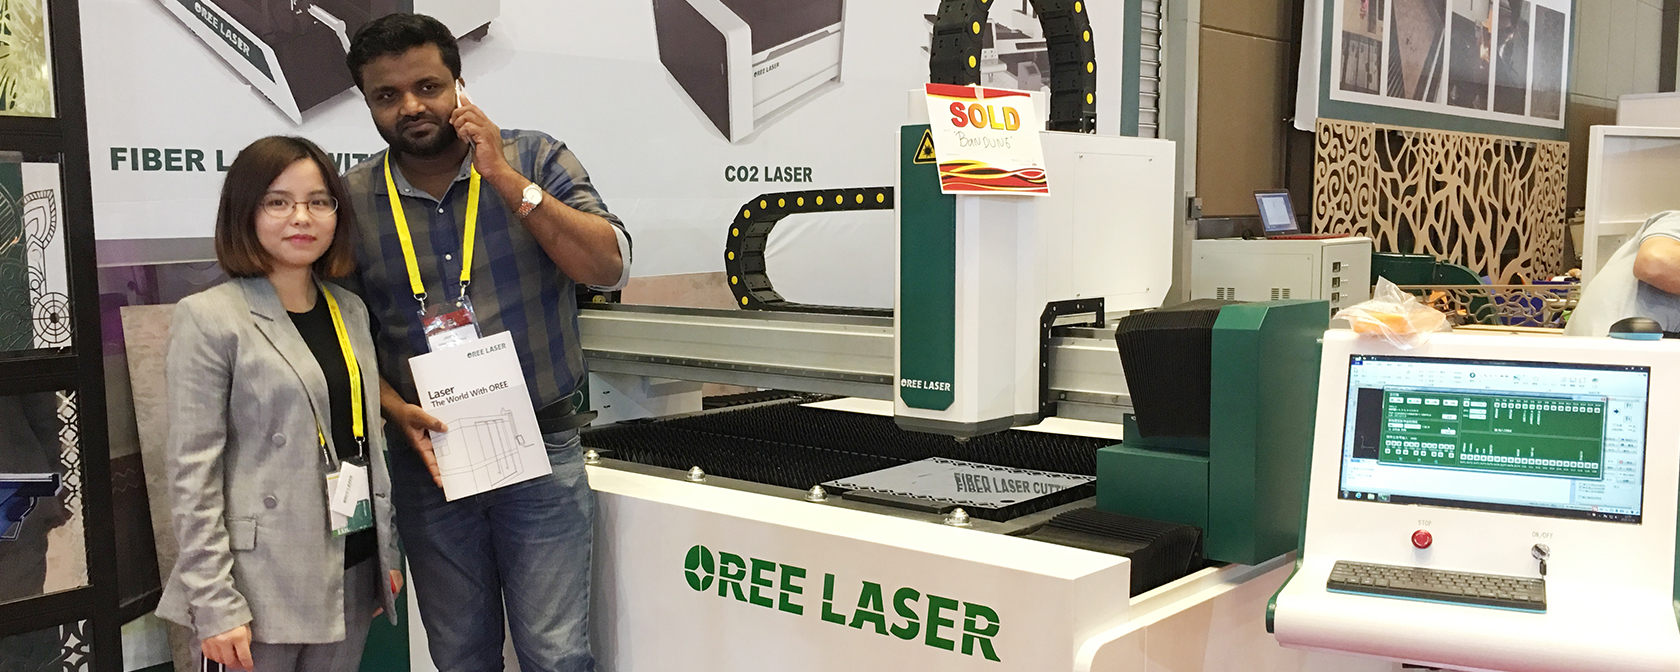 Oree laser is at All print Indonesia